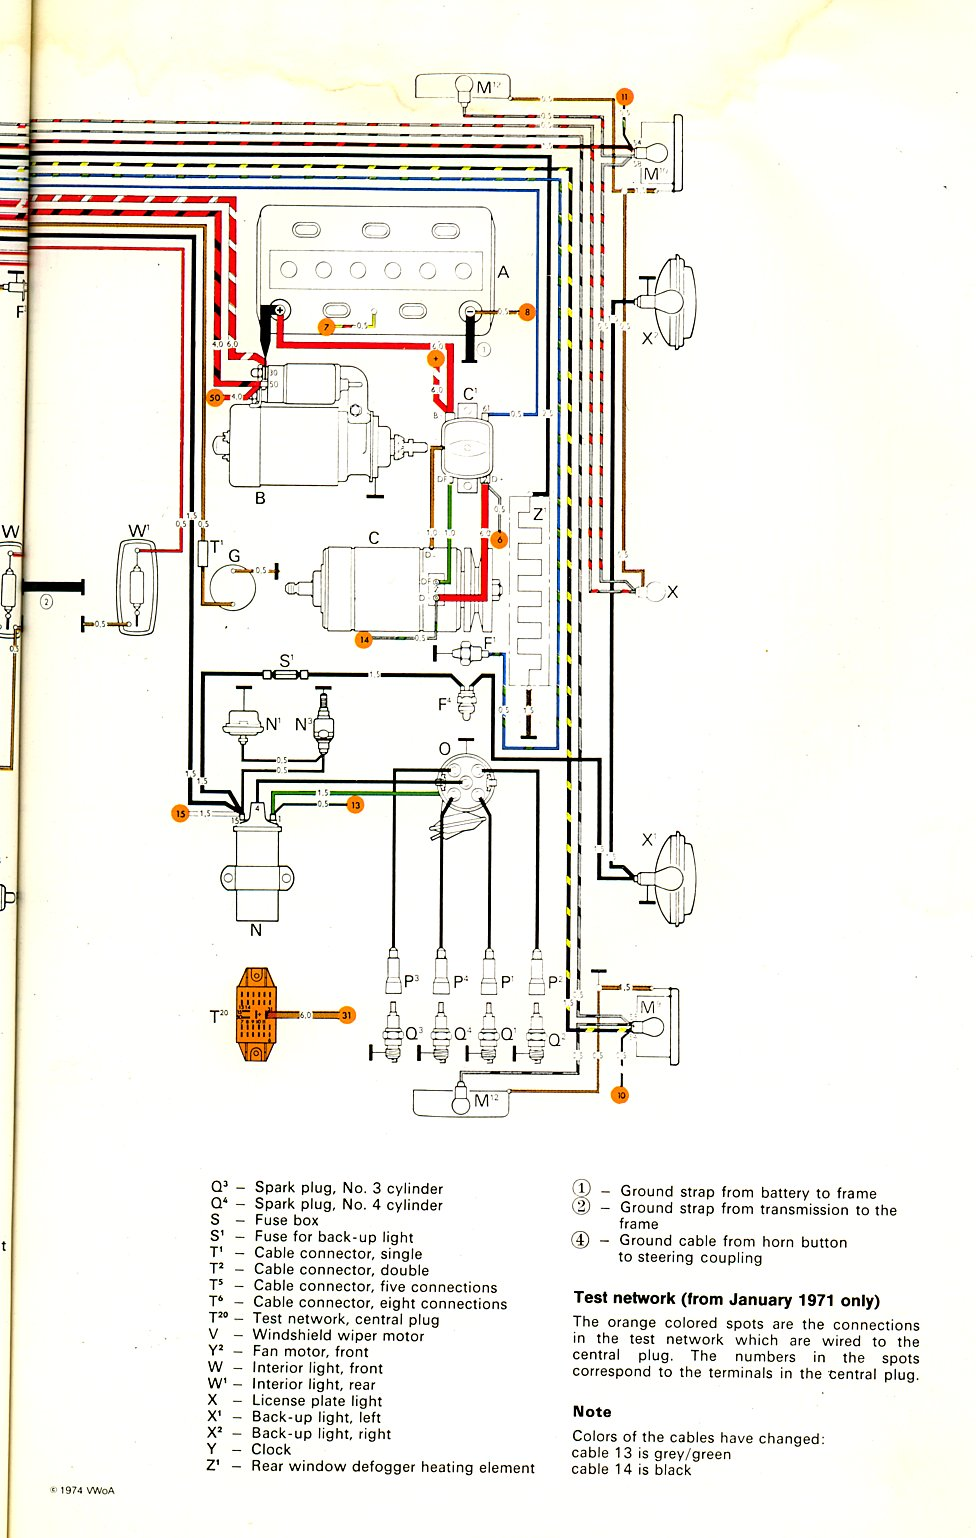 Vanagon Wiring Diagram Ask Answer 1981 Chevy Caprice Thesamba Com Type 2 Diagrams Rh Subaru